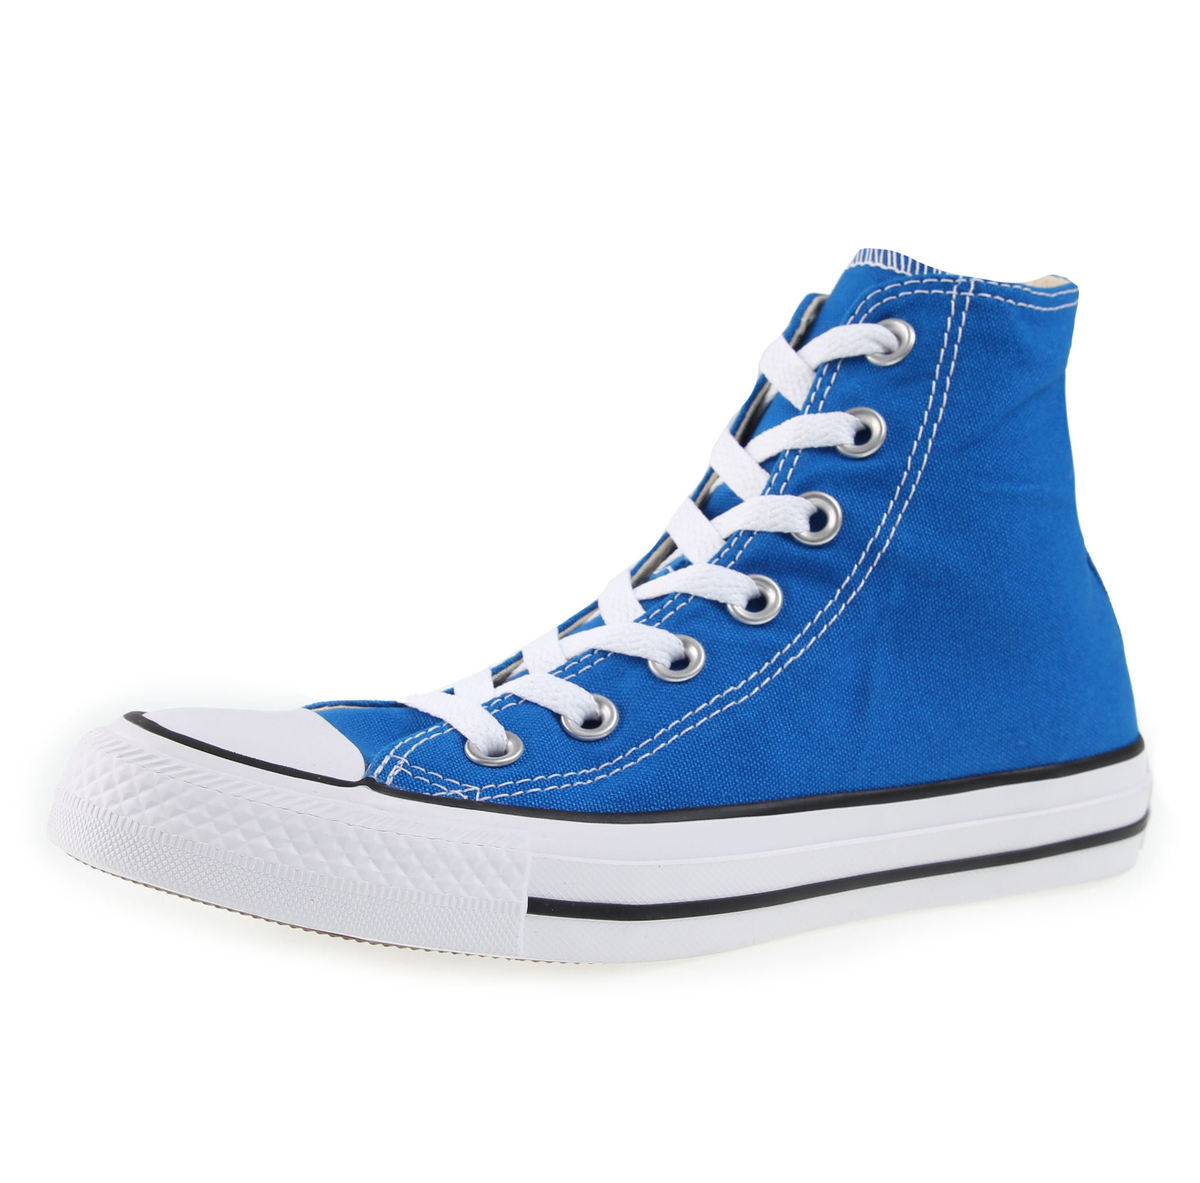 boty CONVERSE - Chuck Taylor All Star - C155566